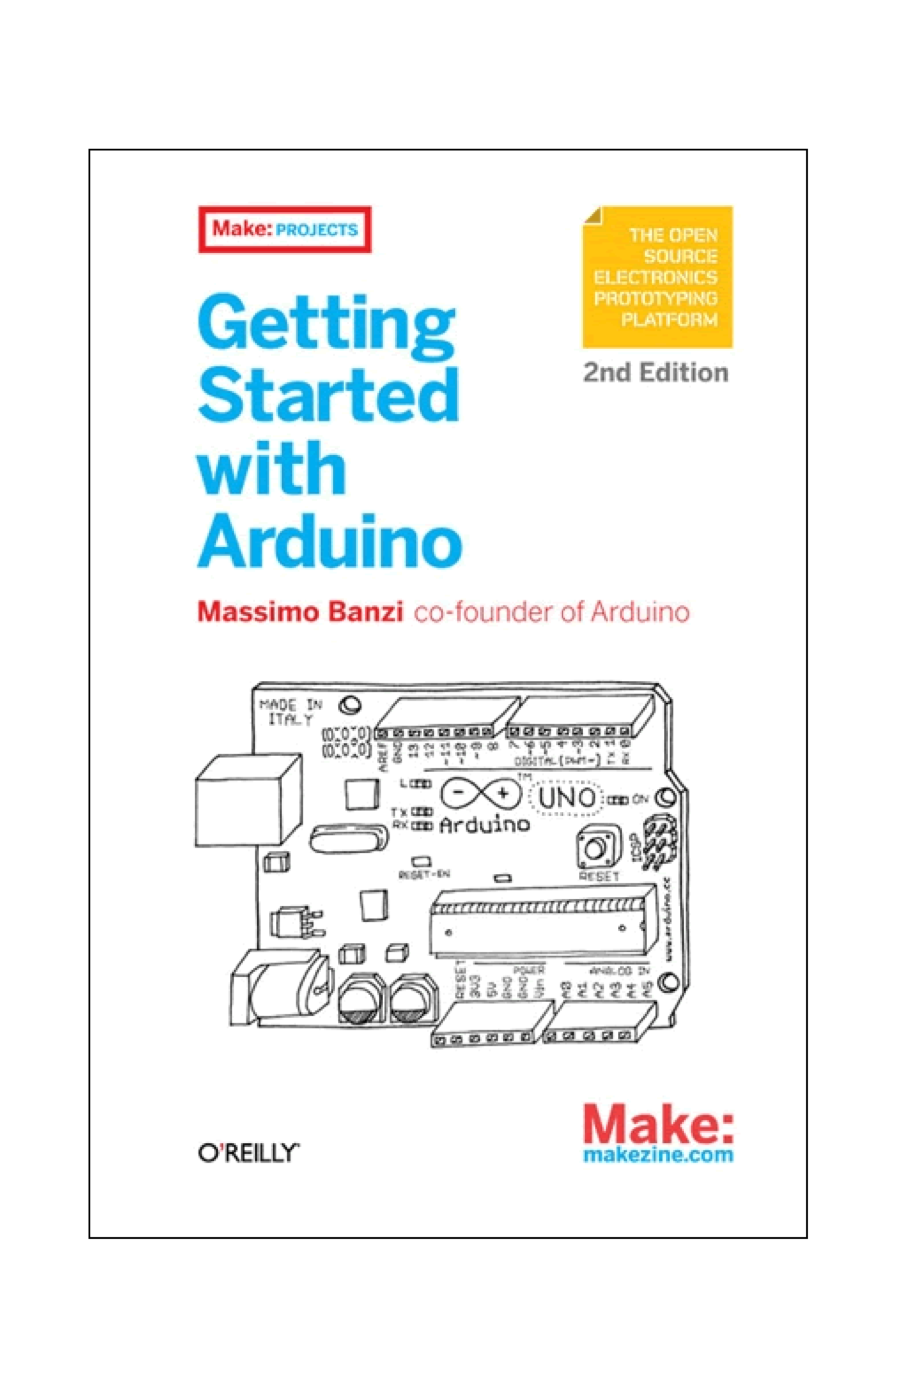 GettingStartedWithArduino